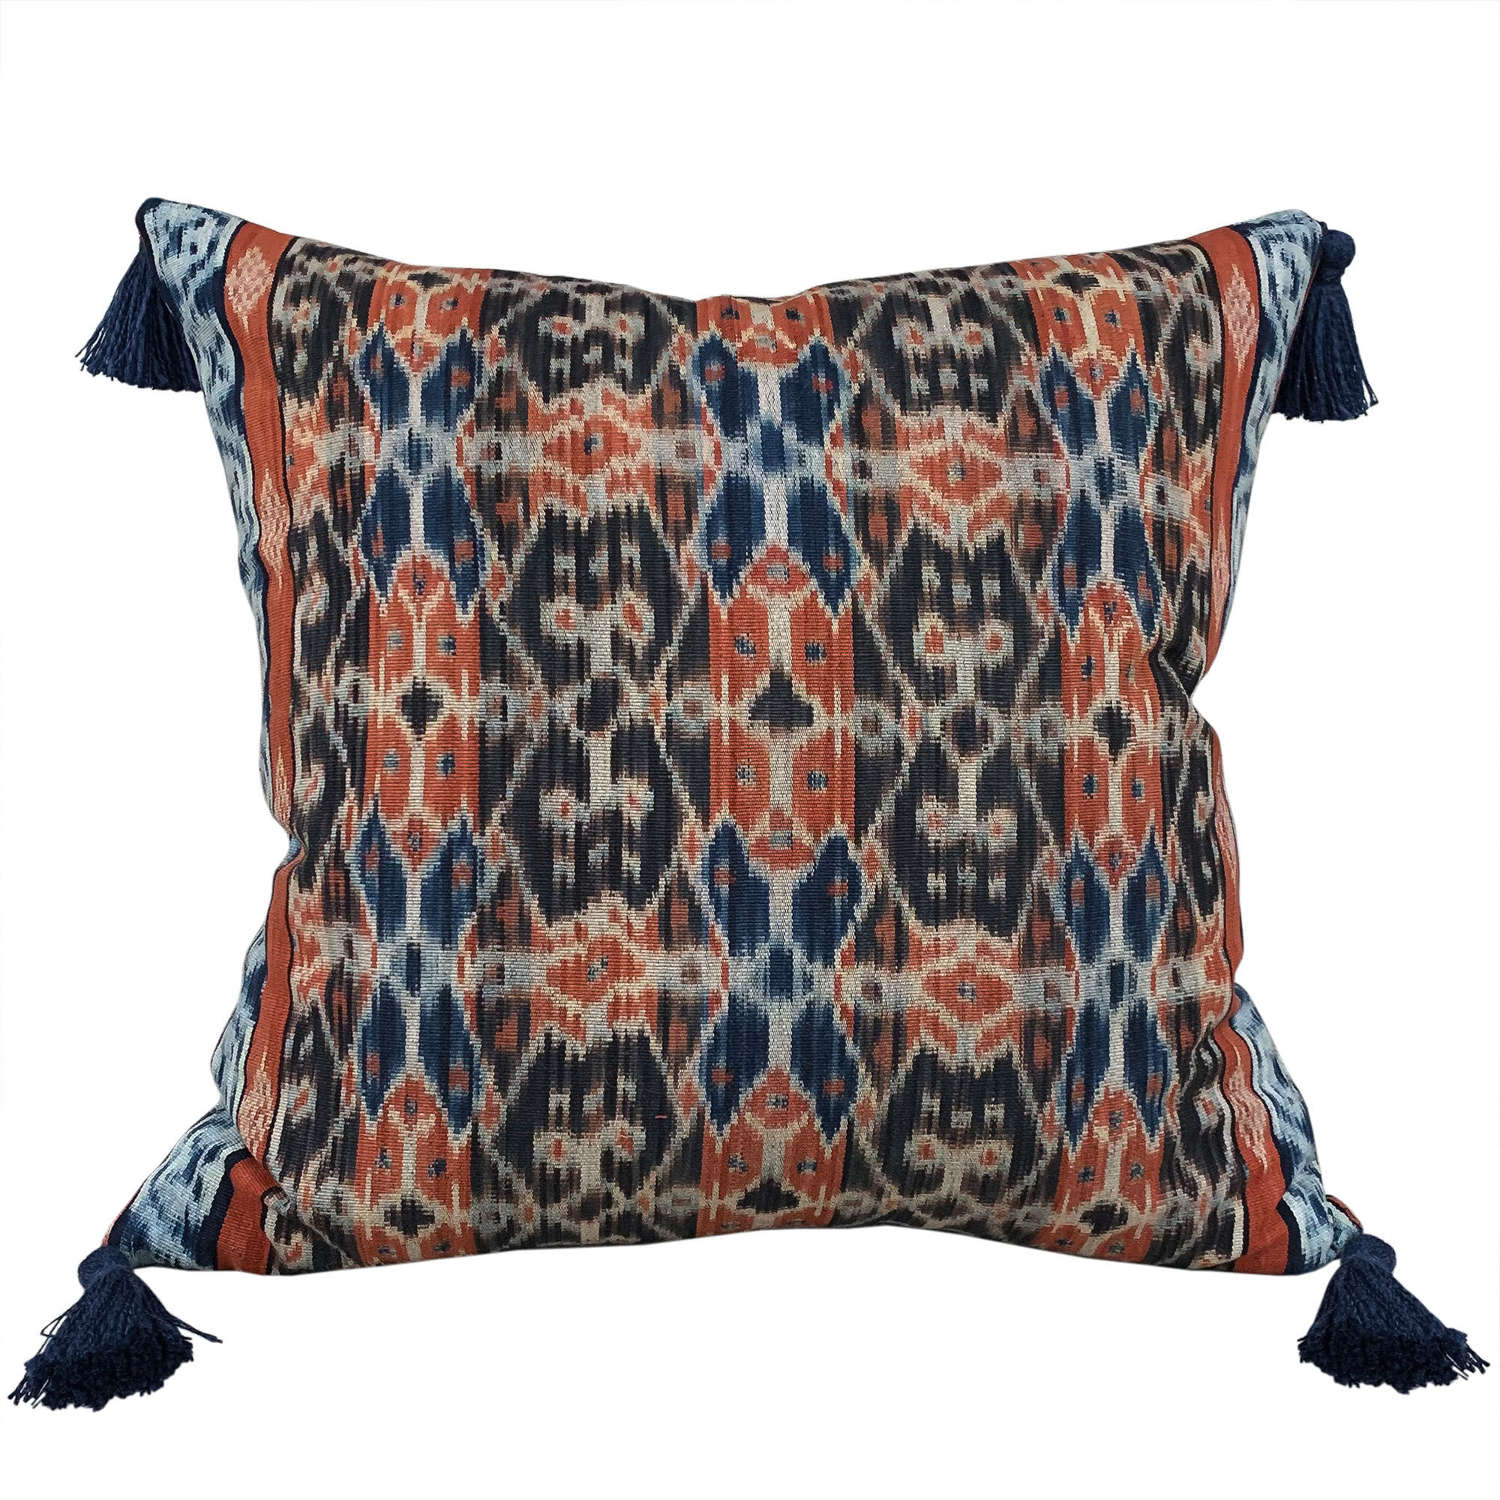 Sumba ikat cushions with tassels